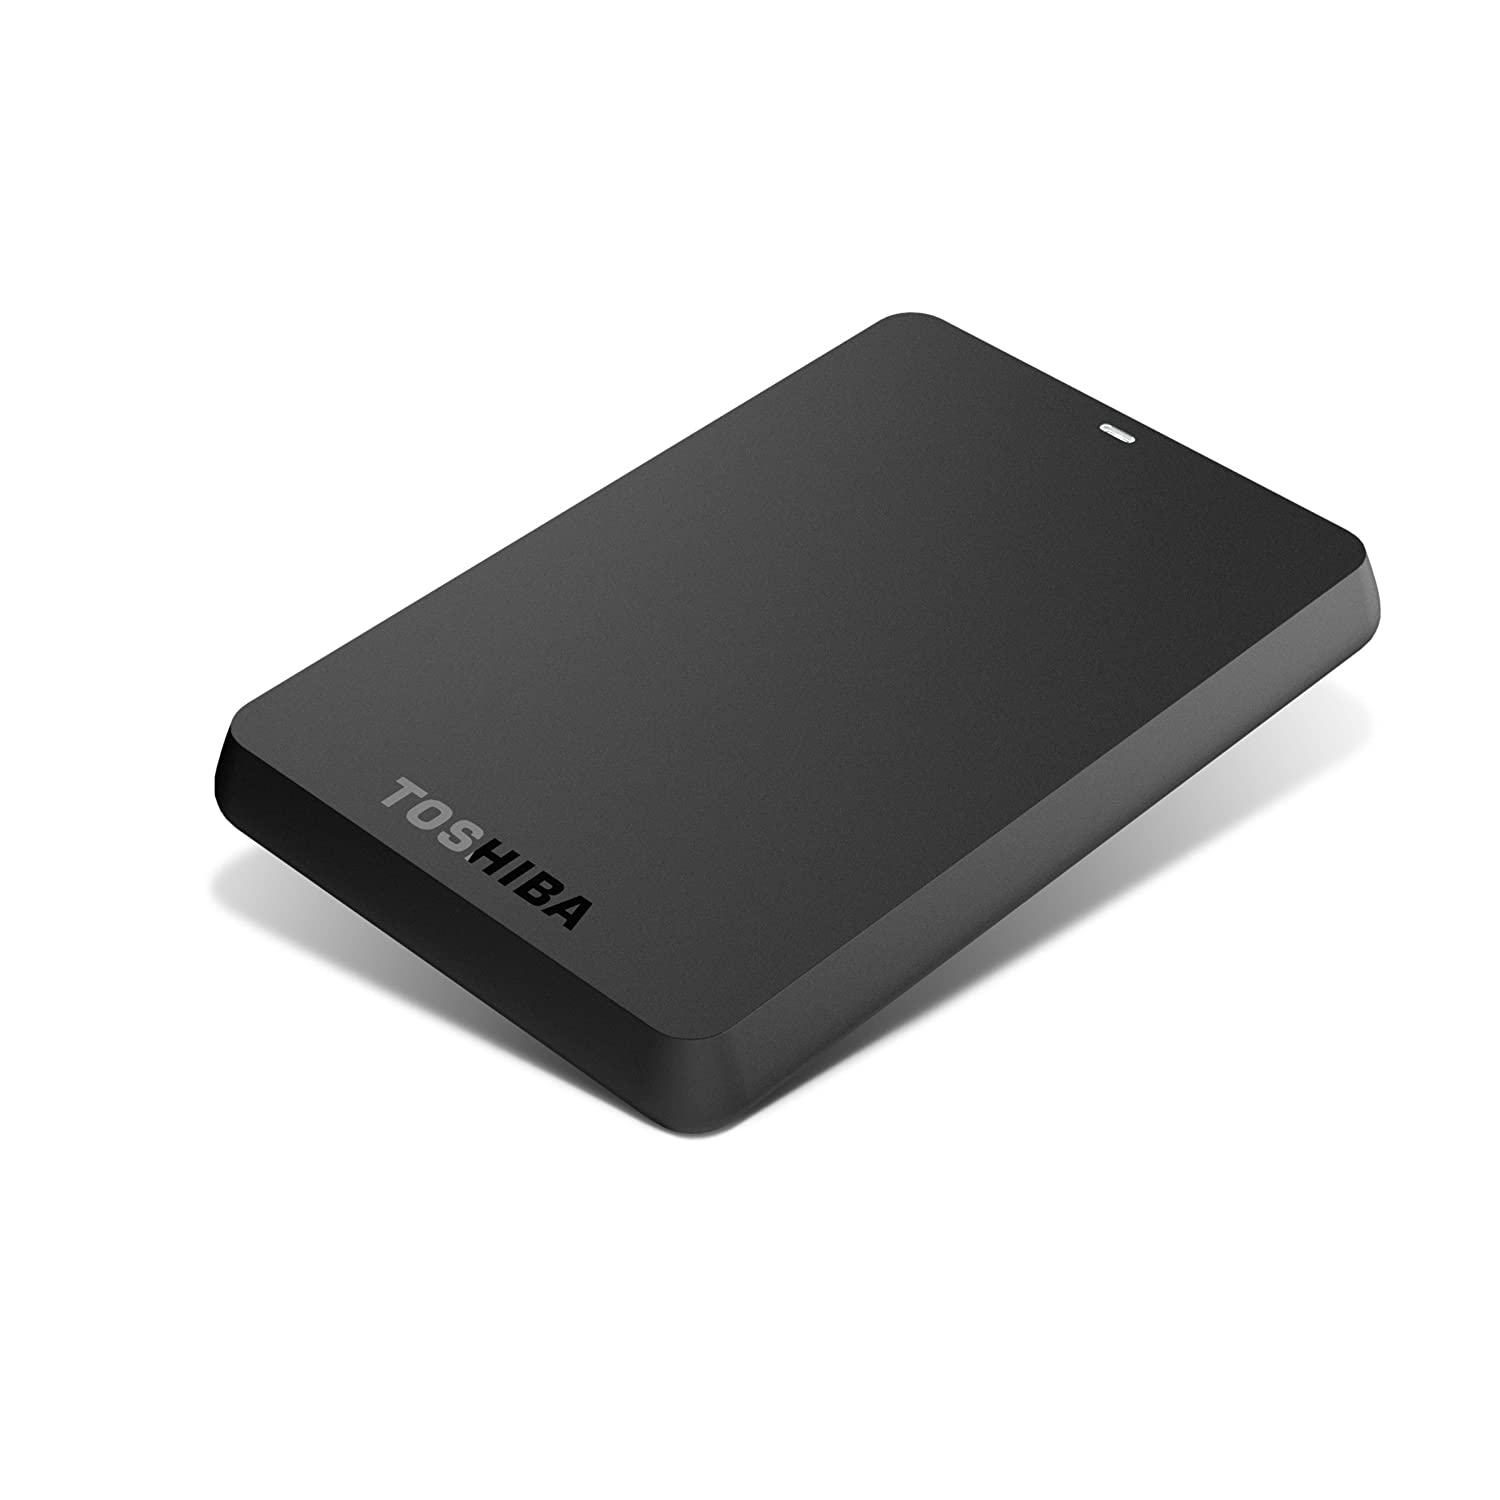 Toshiba 320GB Toshiba Canvio Basics 3.0 Portable Hard Drive in Black (HDTB103XK3AA)